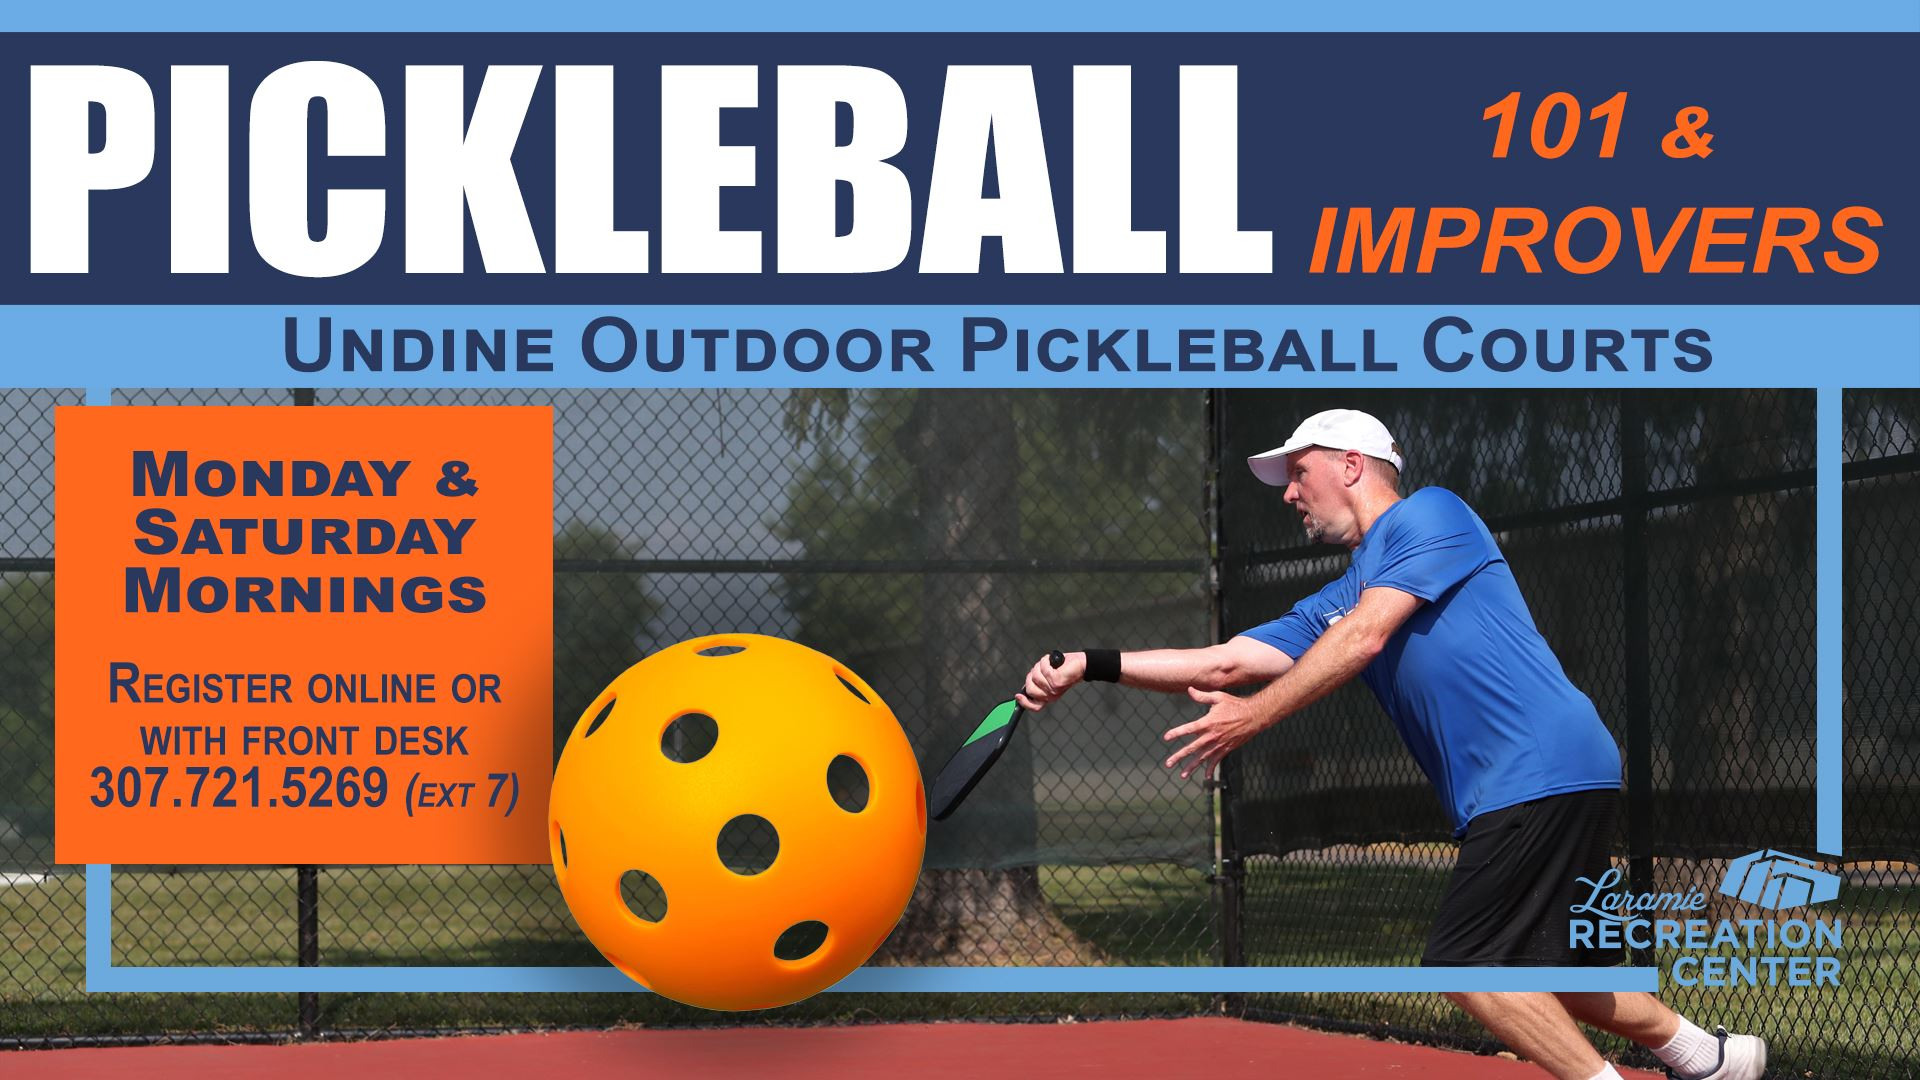 Pickleball101Improvers-Fall2020_FB-Flyer